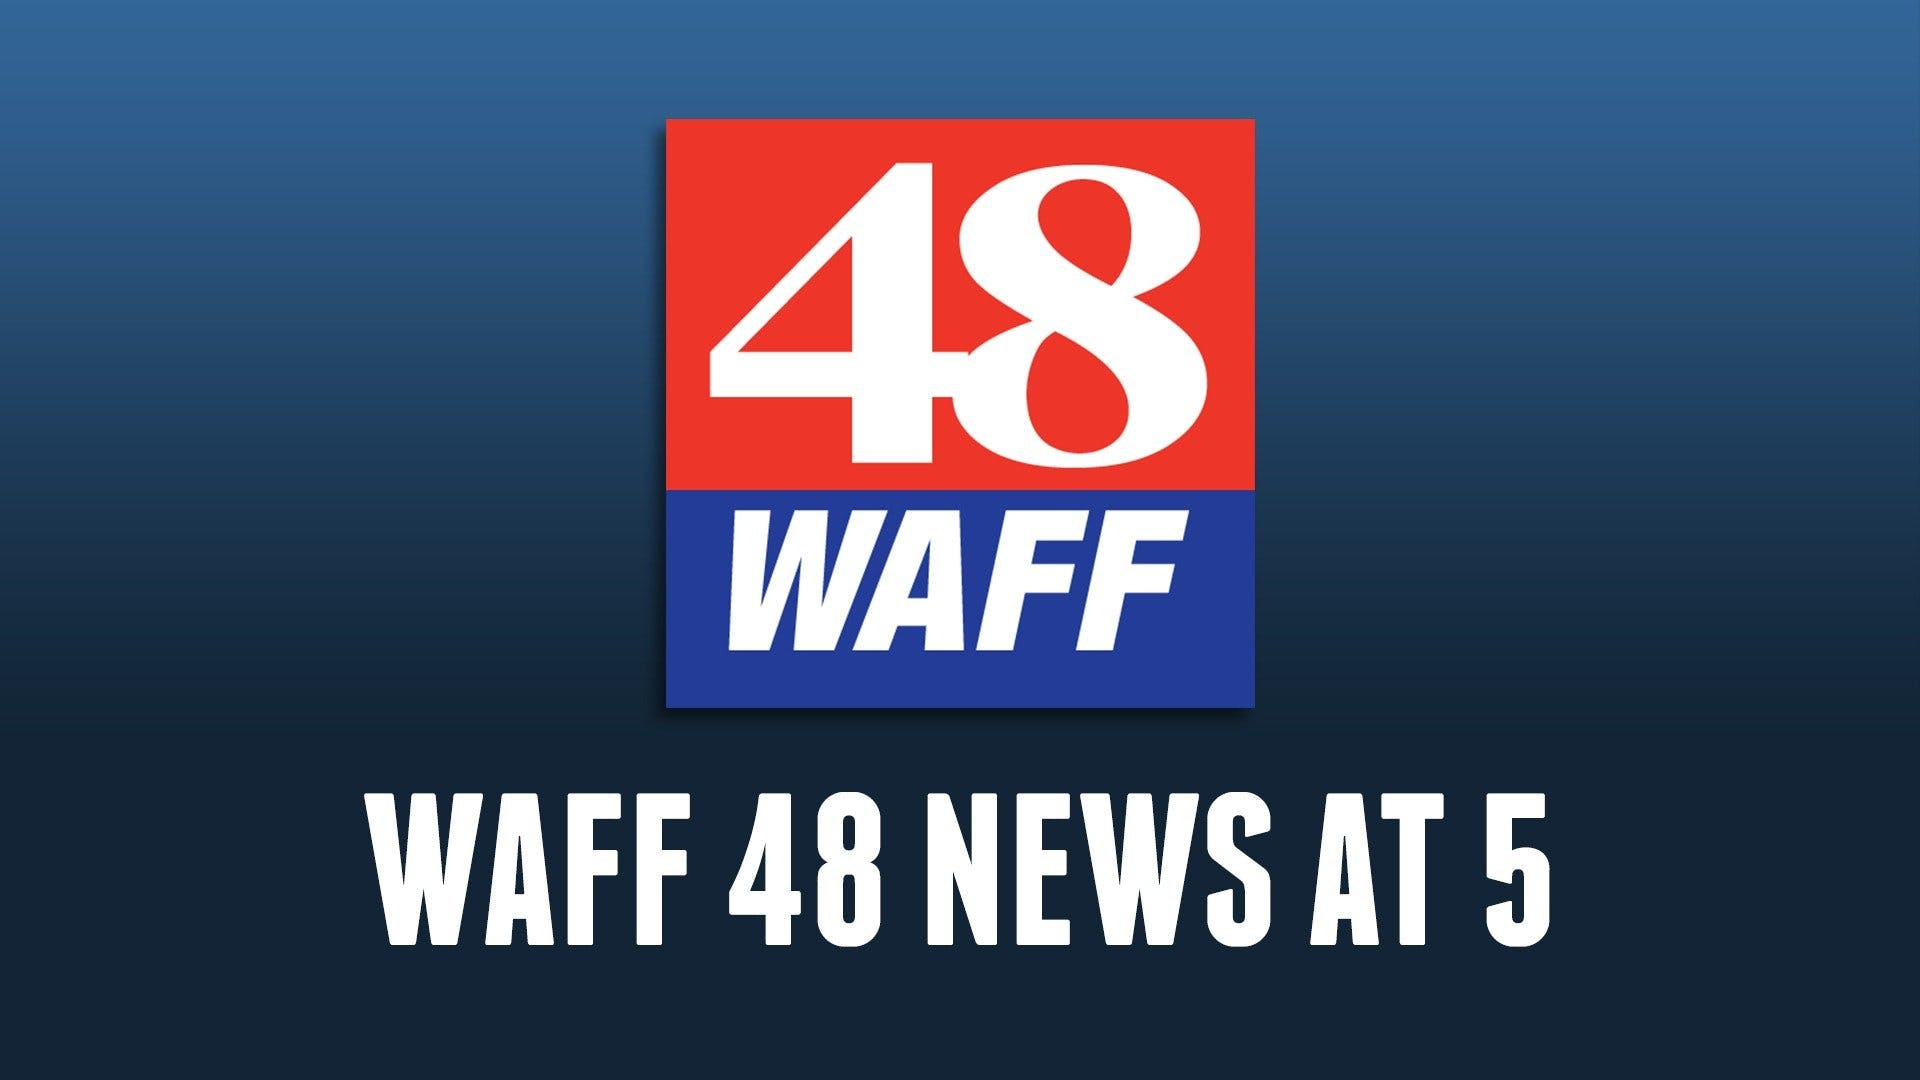 Waff 48 News Phone Number